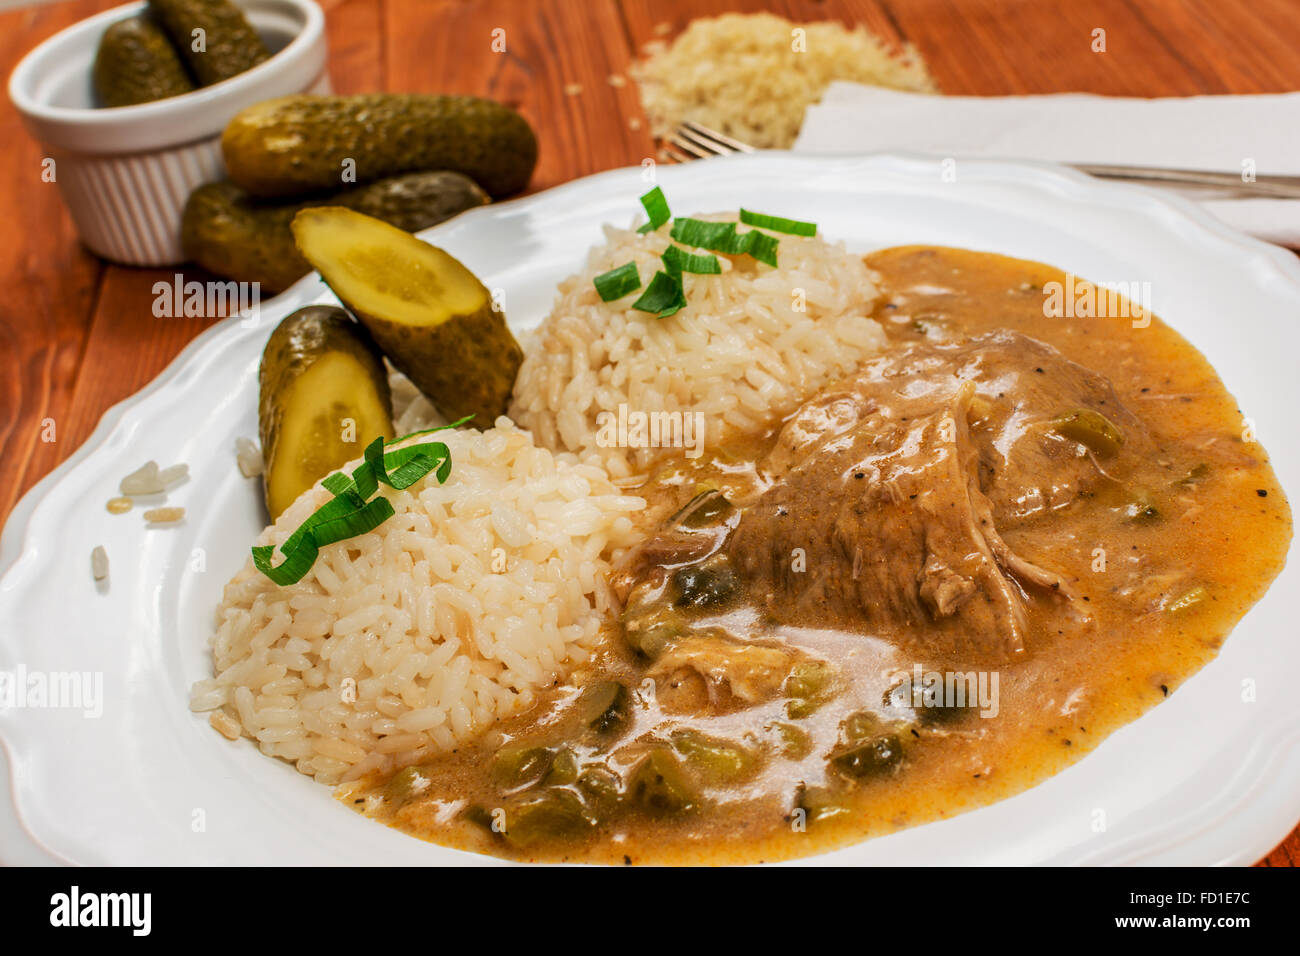 Traditionelle Tschechische Küche In Prag Czech Food Stockfotos And Czech Food Bilder Alamy